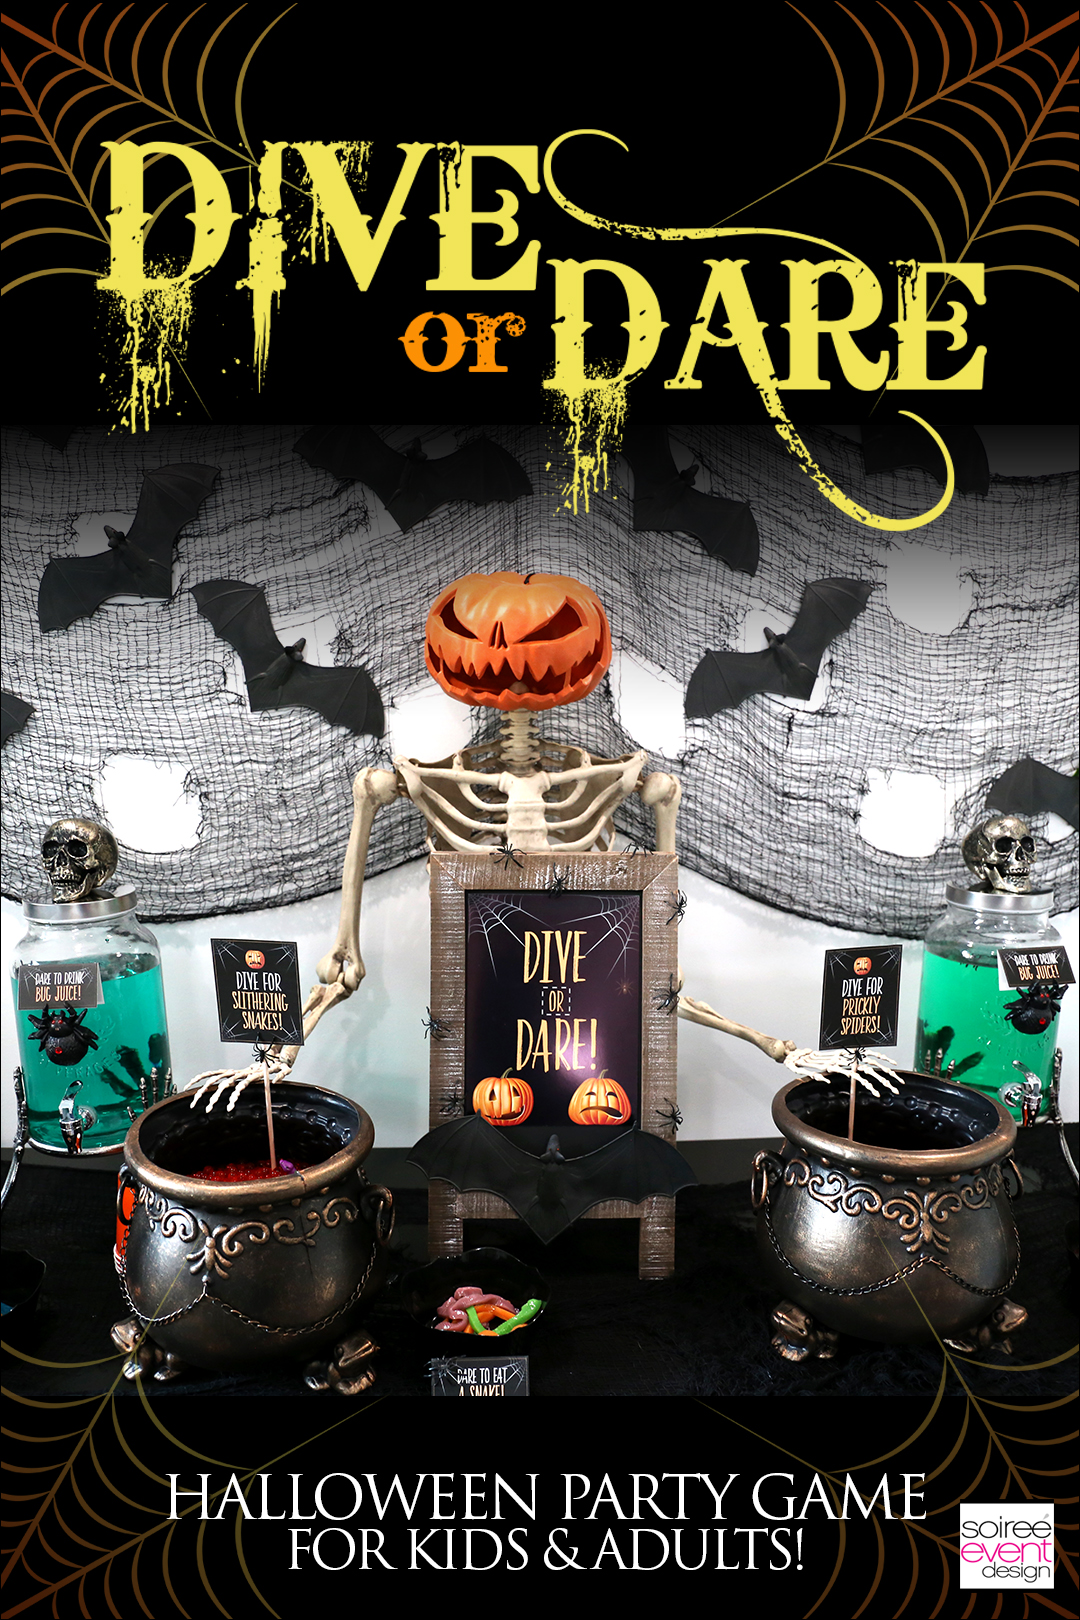 Are you looking for spooky Halloween party games that are fun for both kids and adults? Then this is it! Check out how to play and set up Dive or Dare!  It\'s fun AND looks amazing at your party!